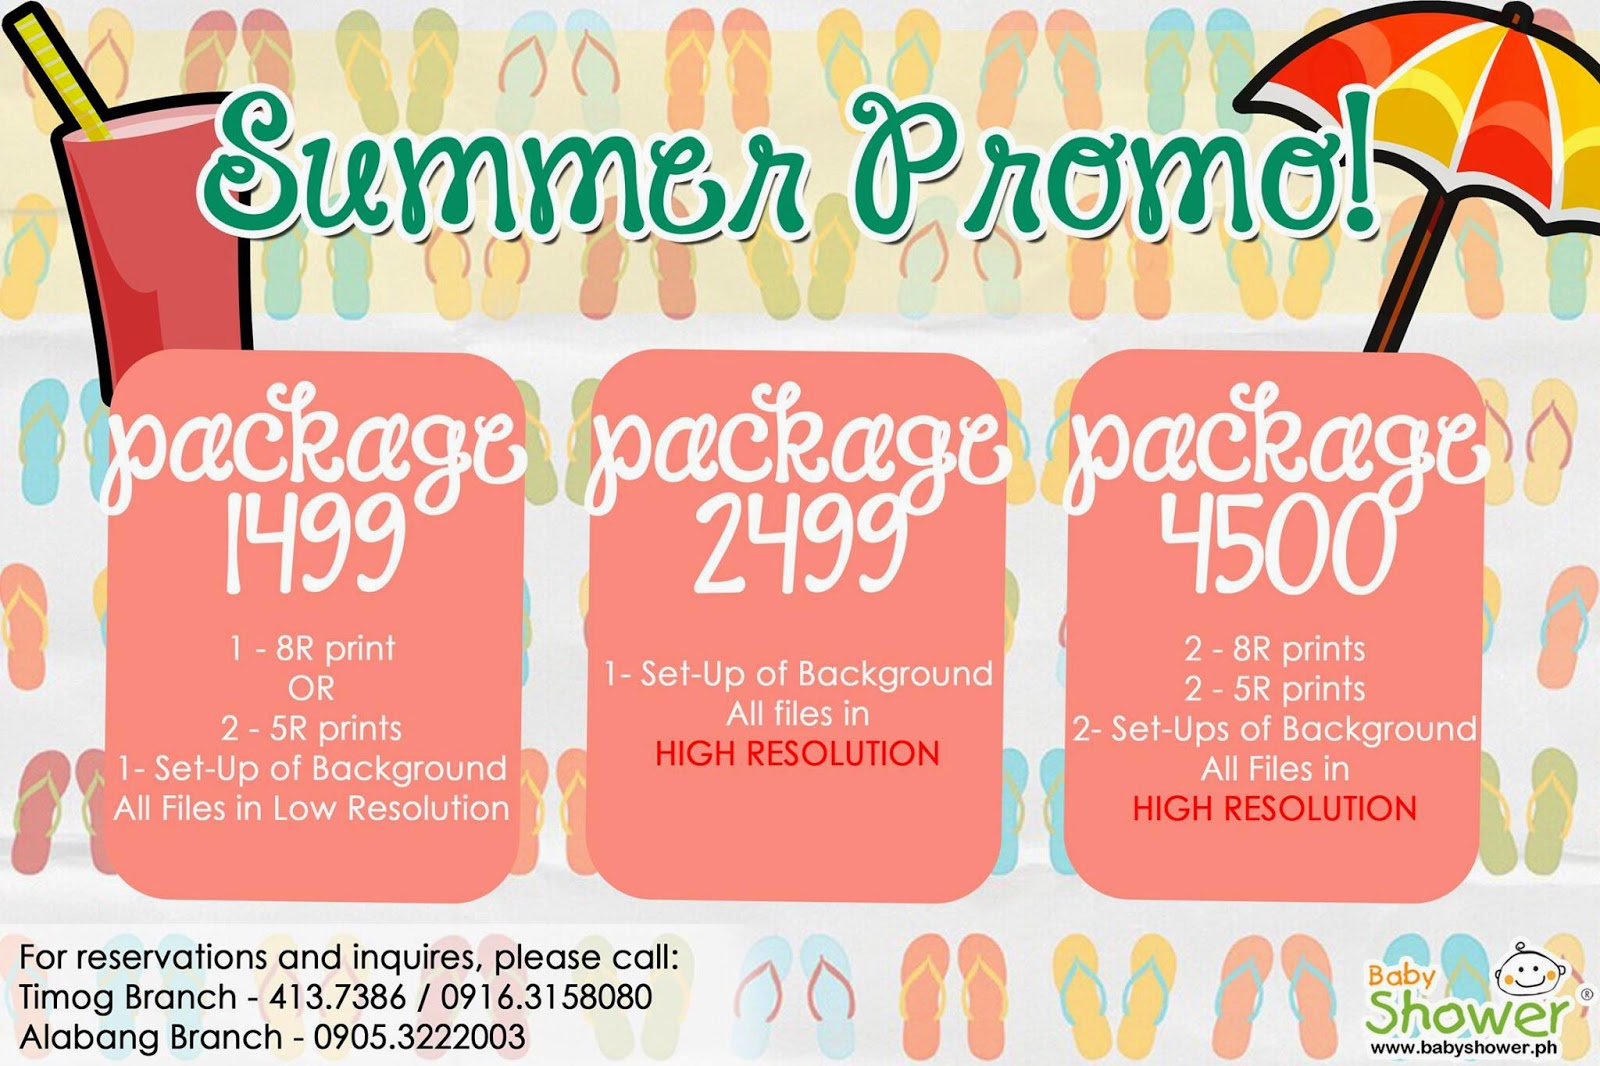 baby shower package deals philippines